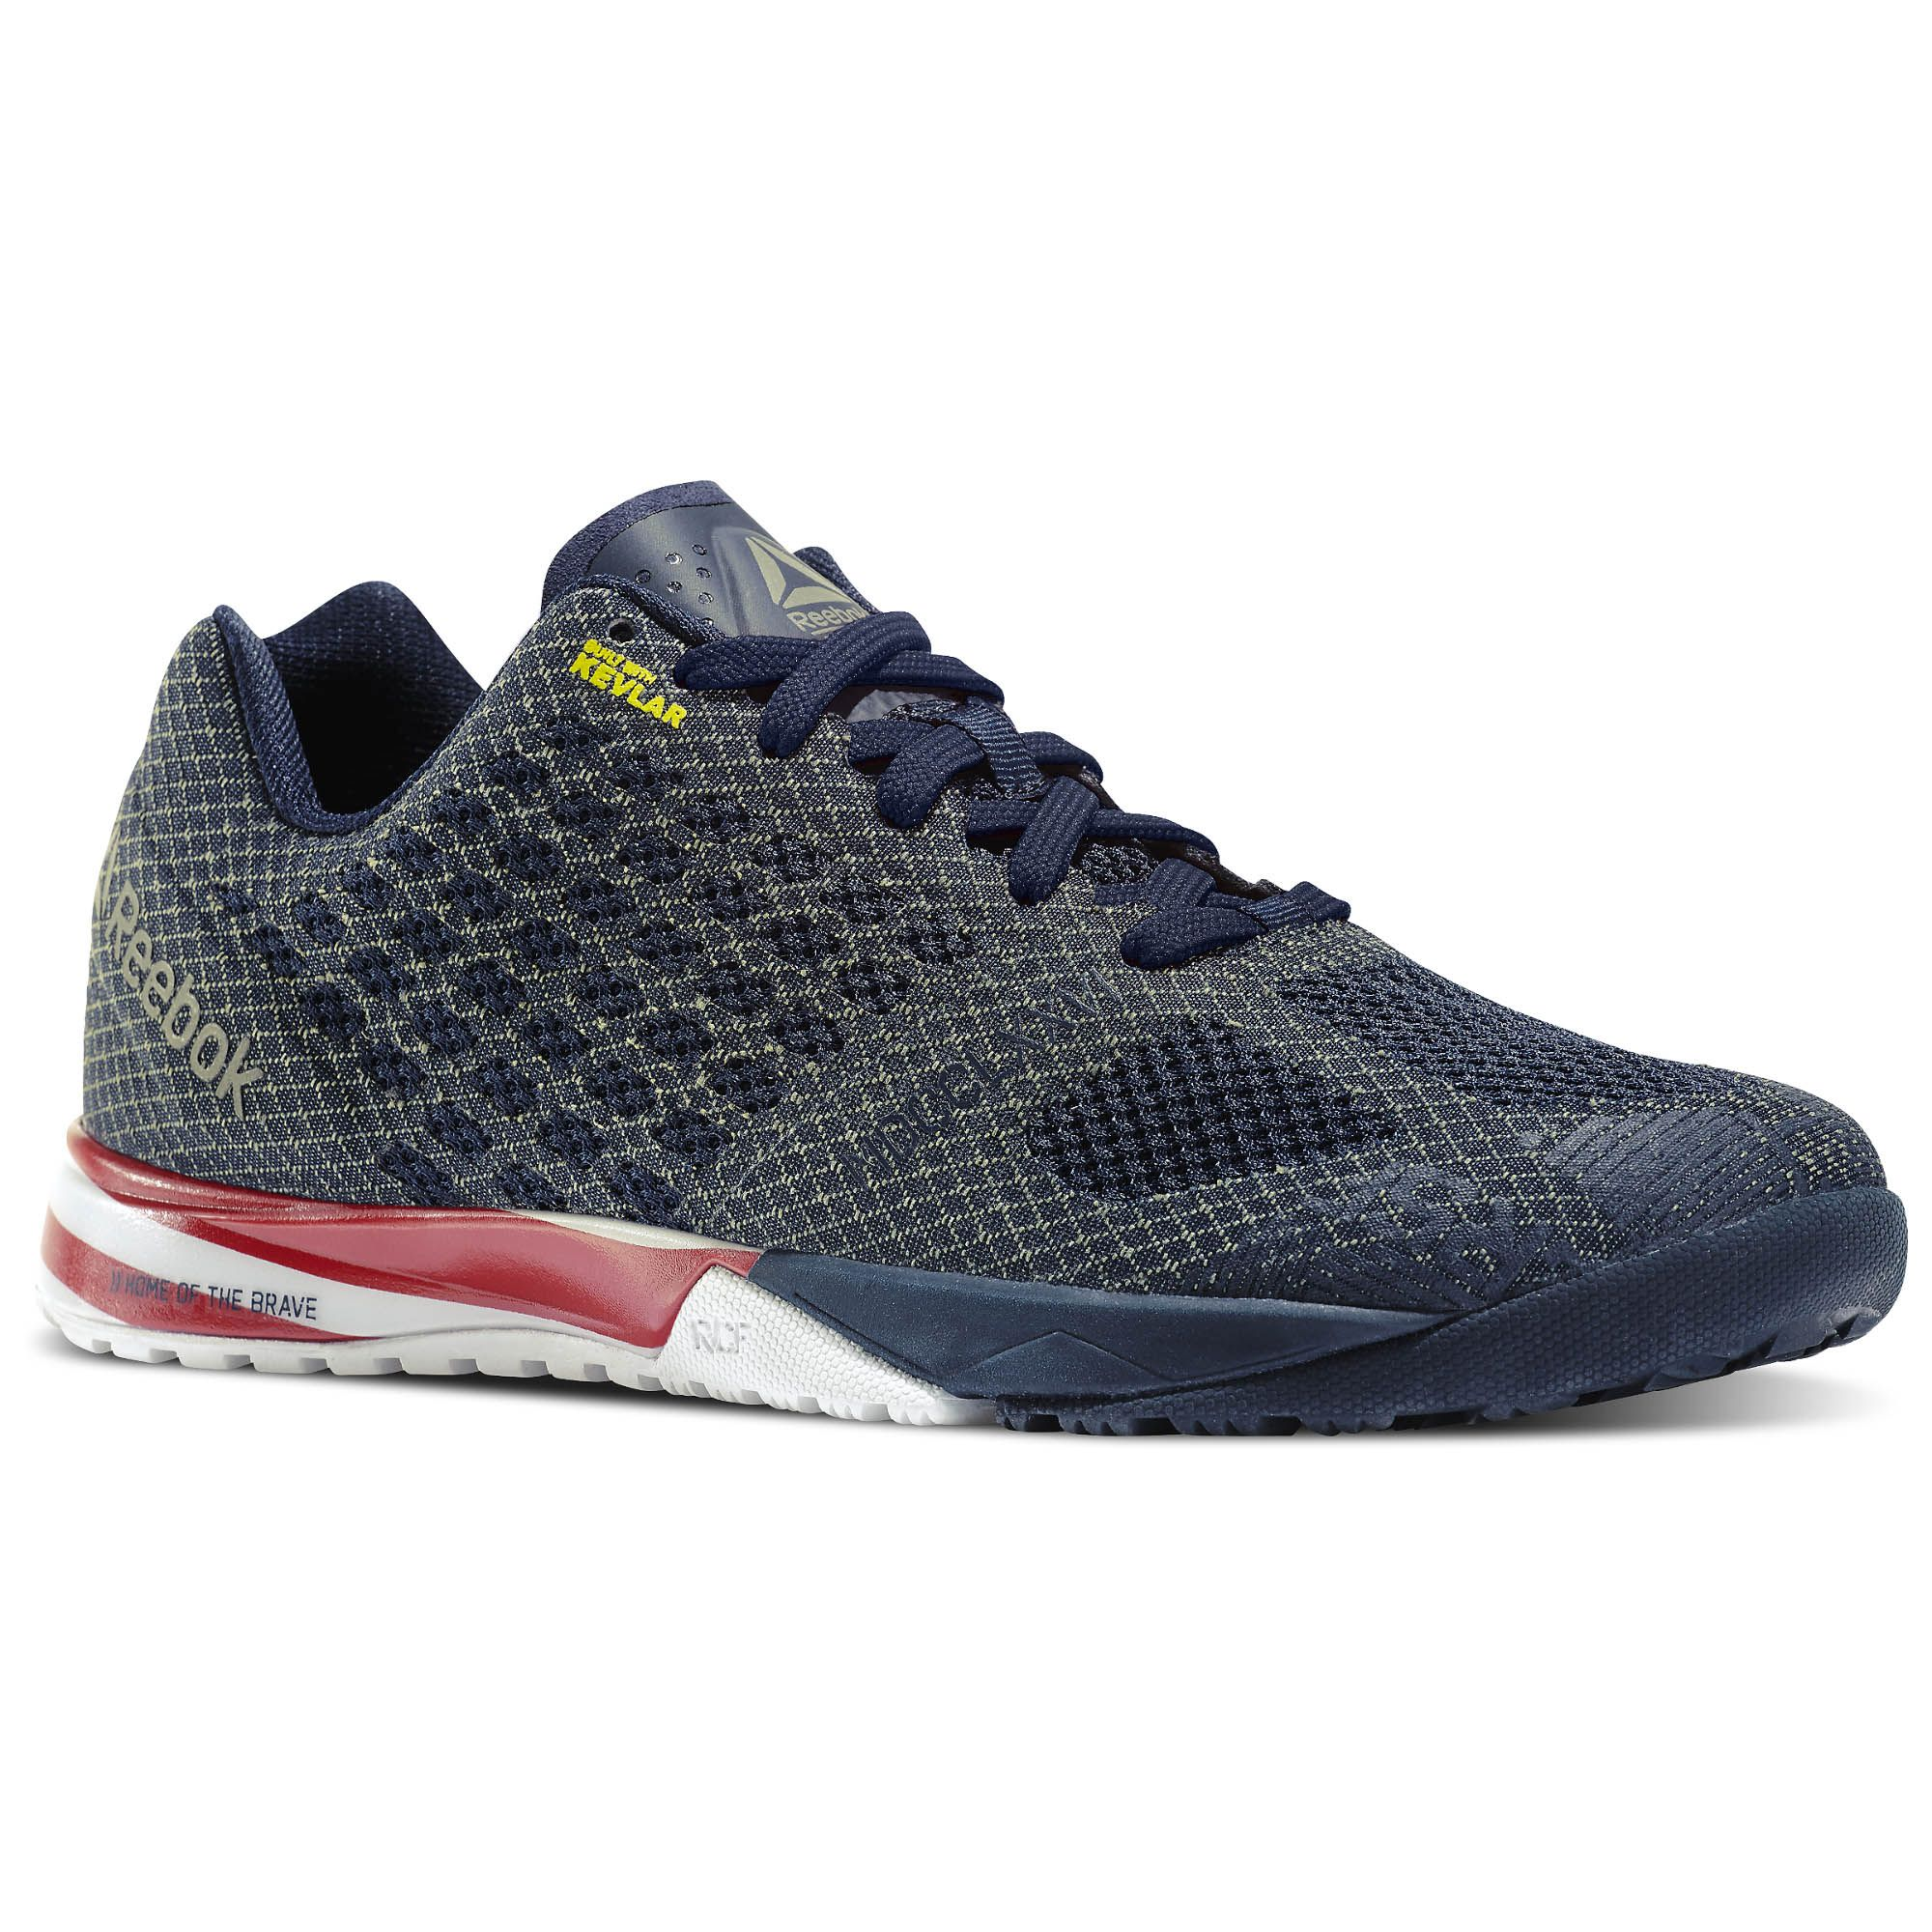 aefec3f8fe822 Introducing our lightest, strongest, most innovative Nano yet - in a  limited edition colorway. The Nano 5.0 features a mesh upper infused with  durable ...